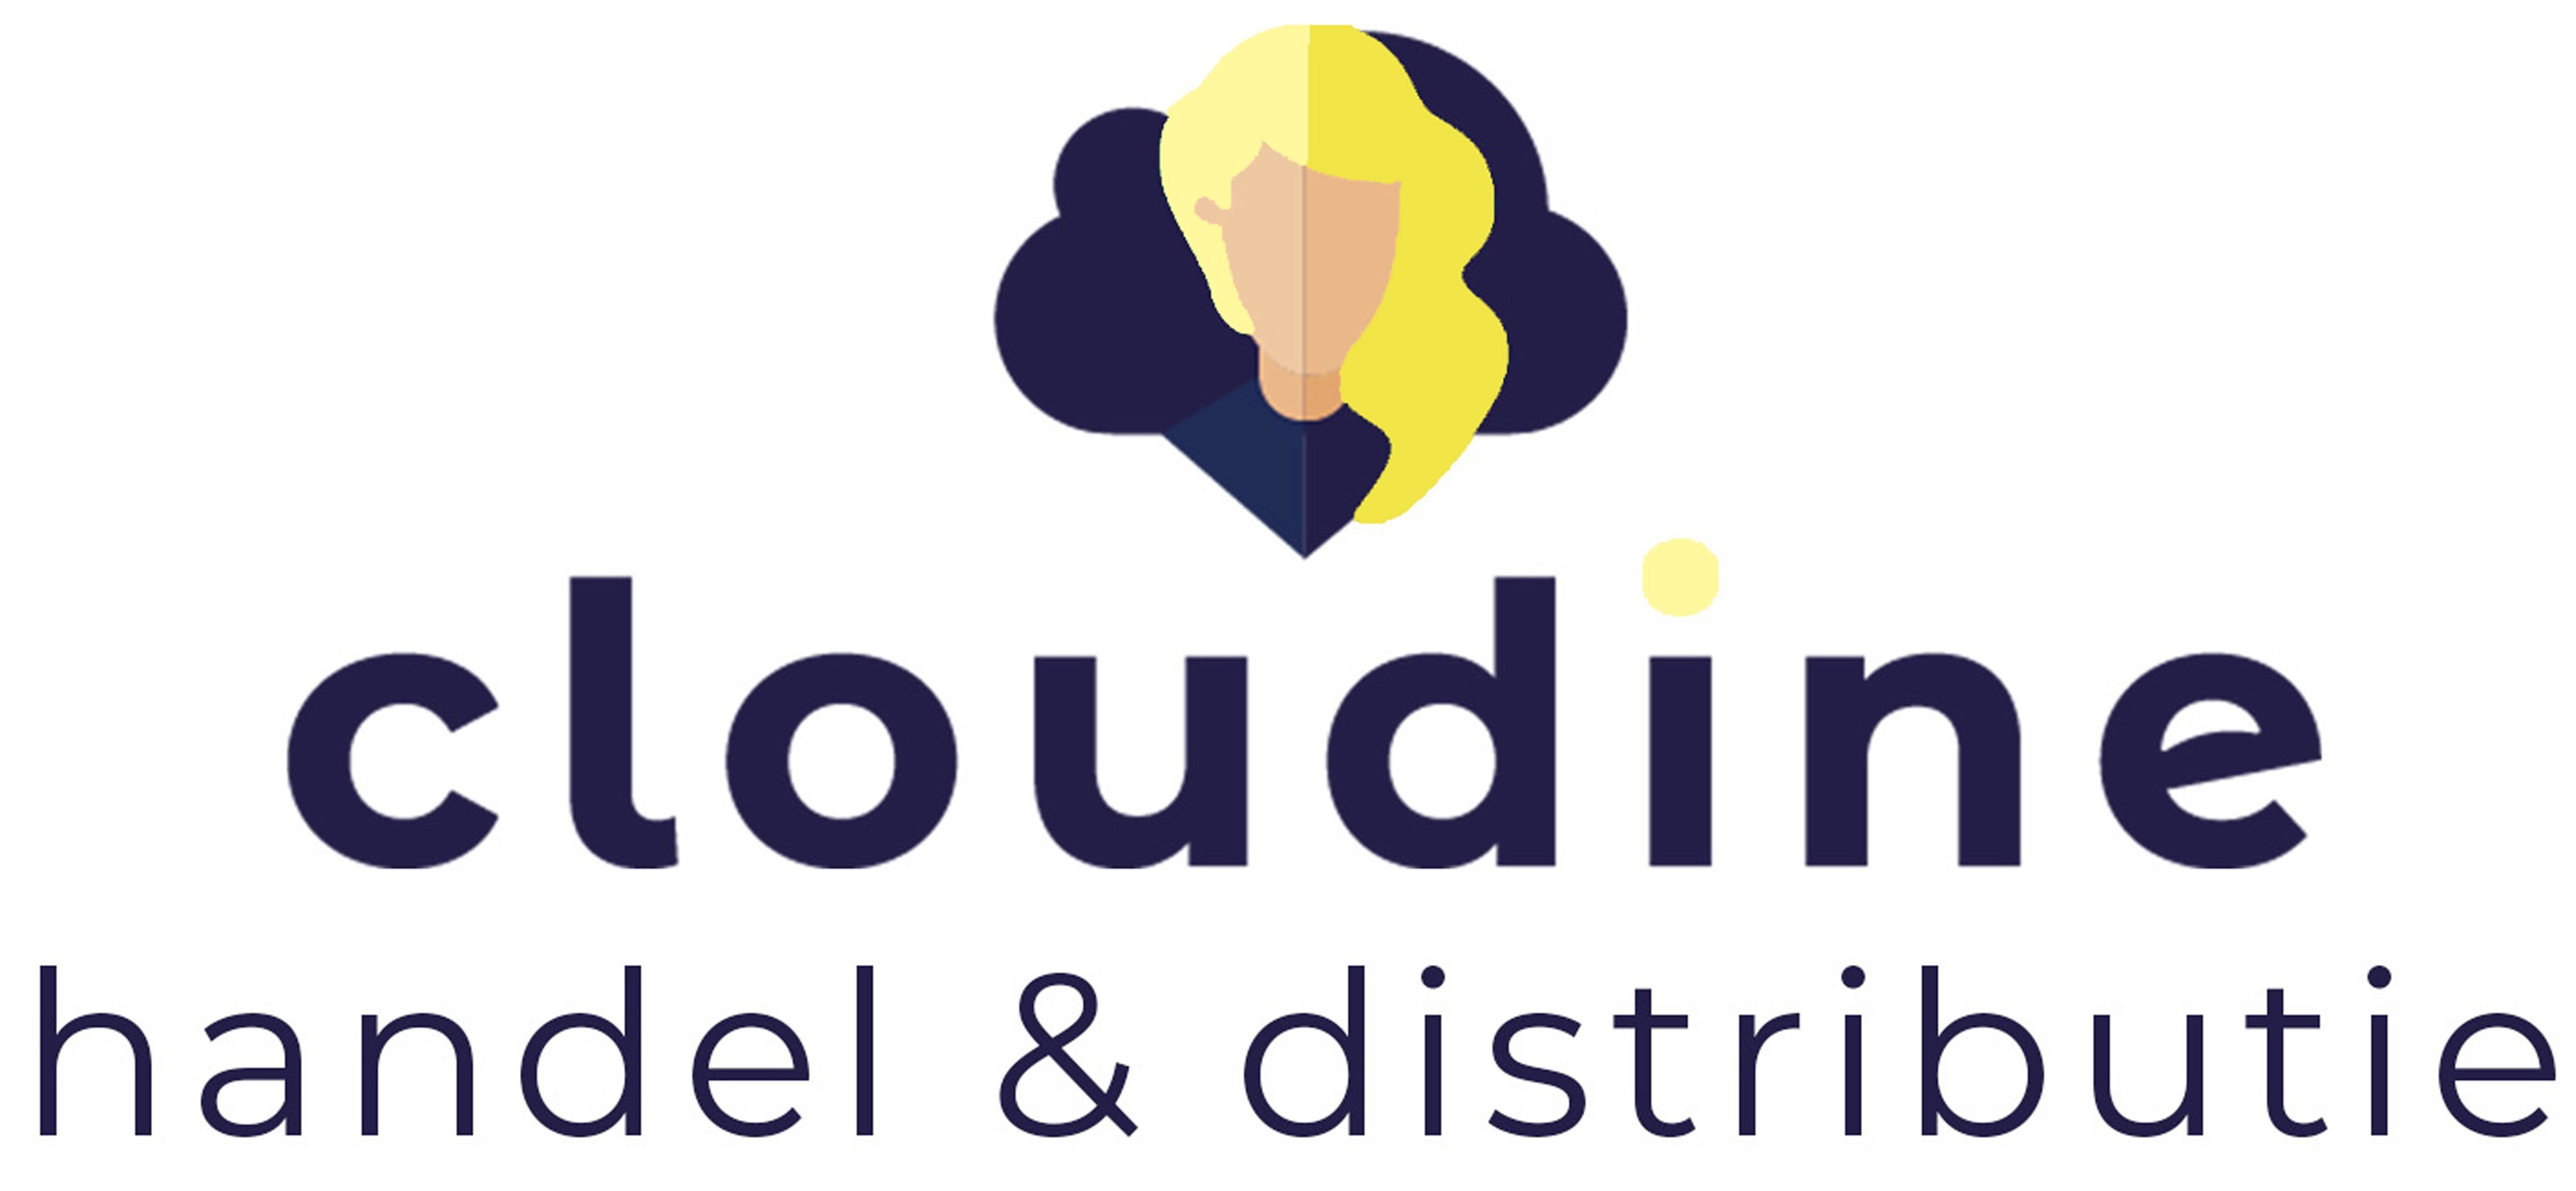 Cloudine - handel & distributie | Fourtop ICT